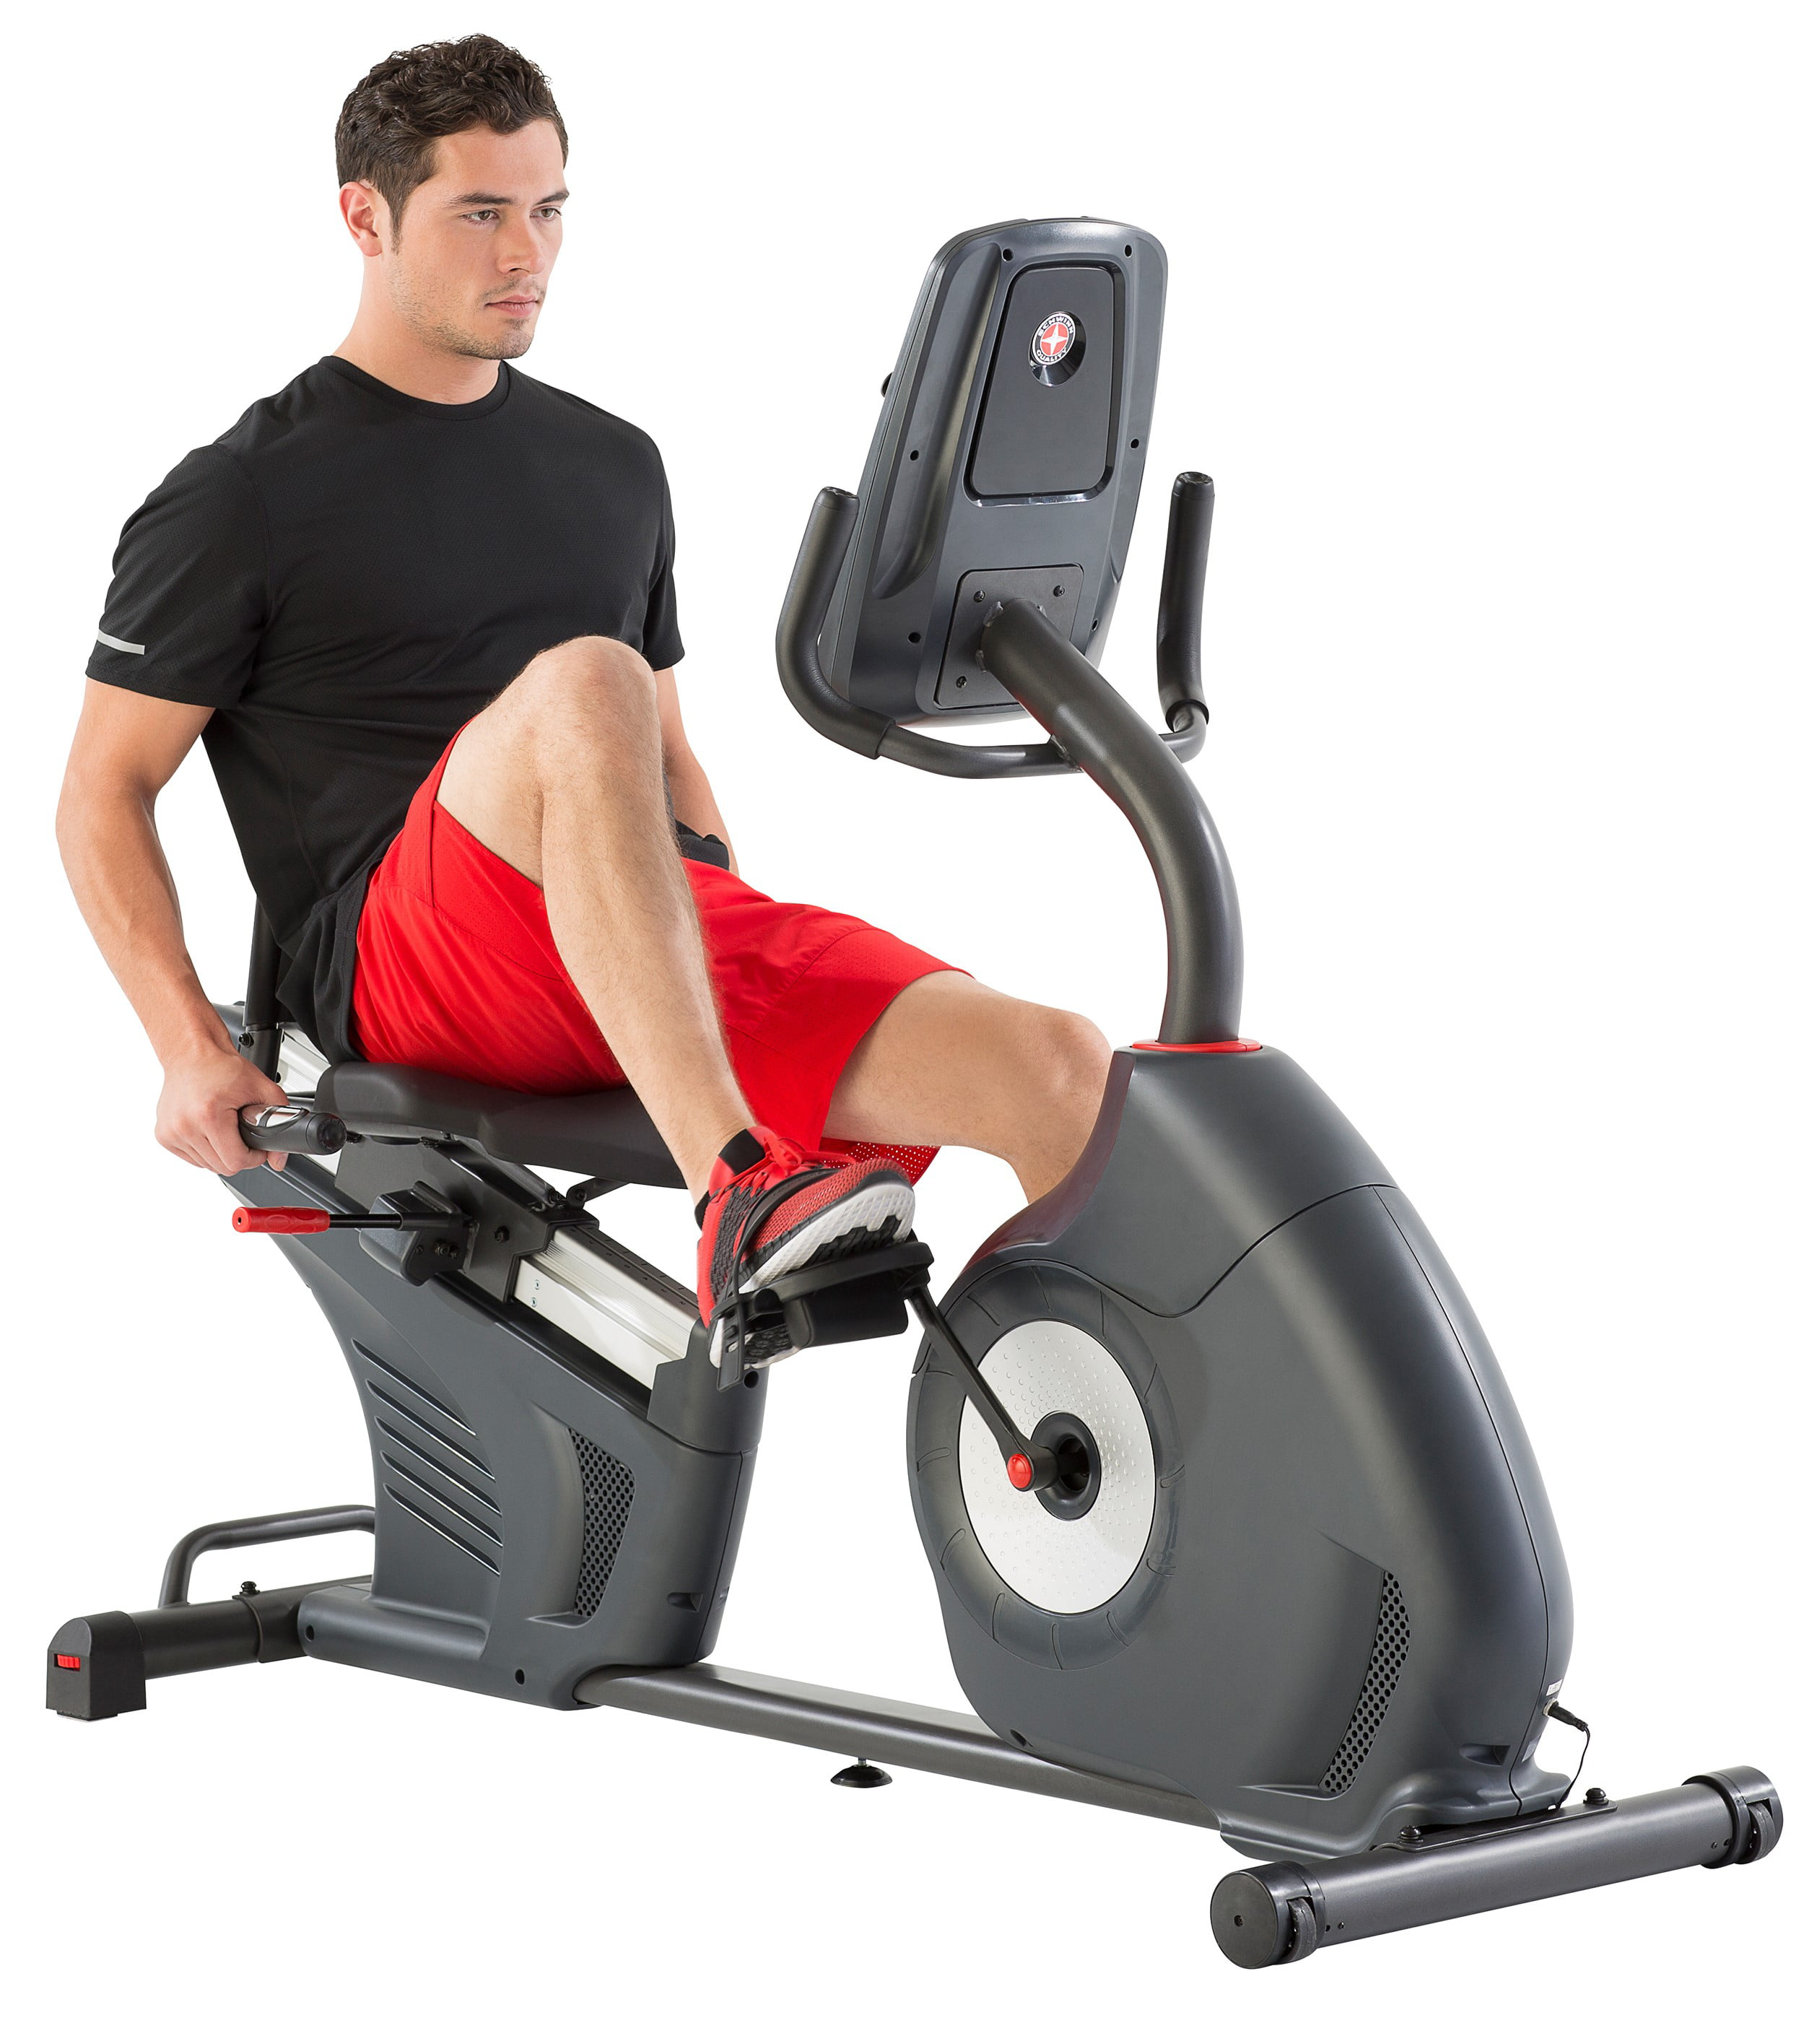 Image result for recumbent exercise bike